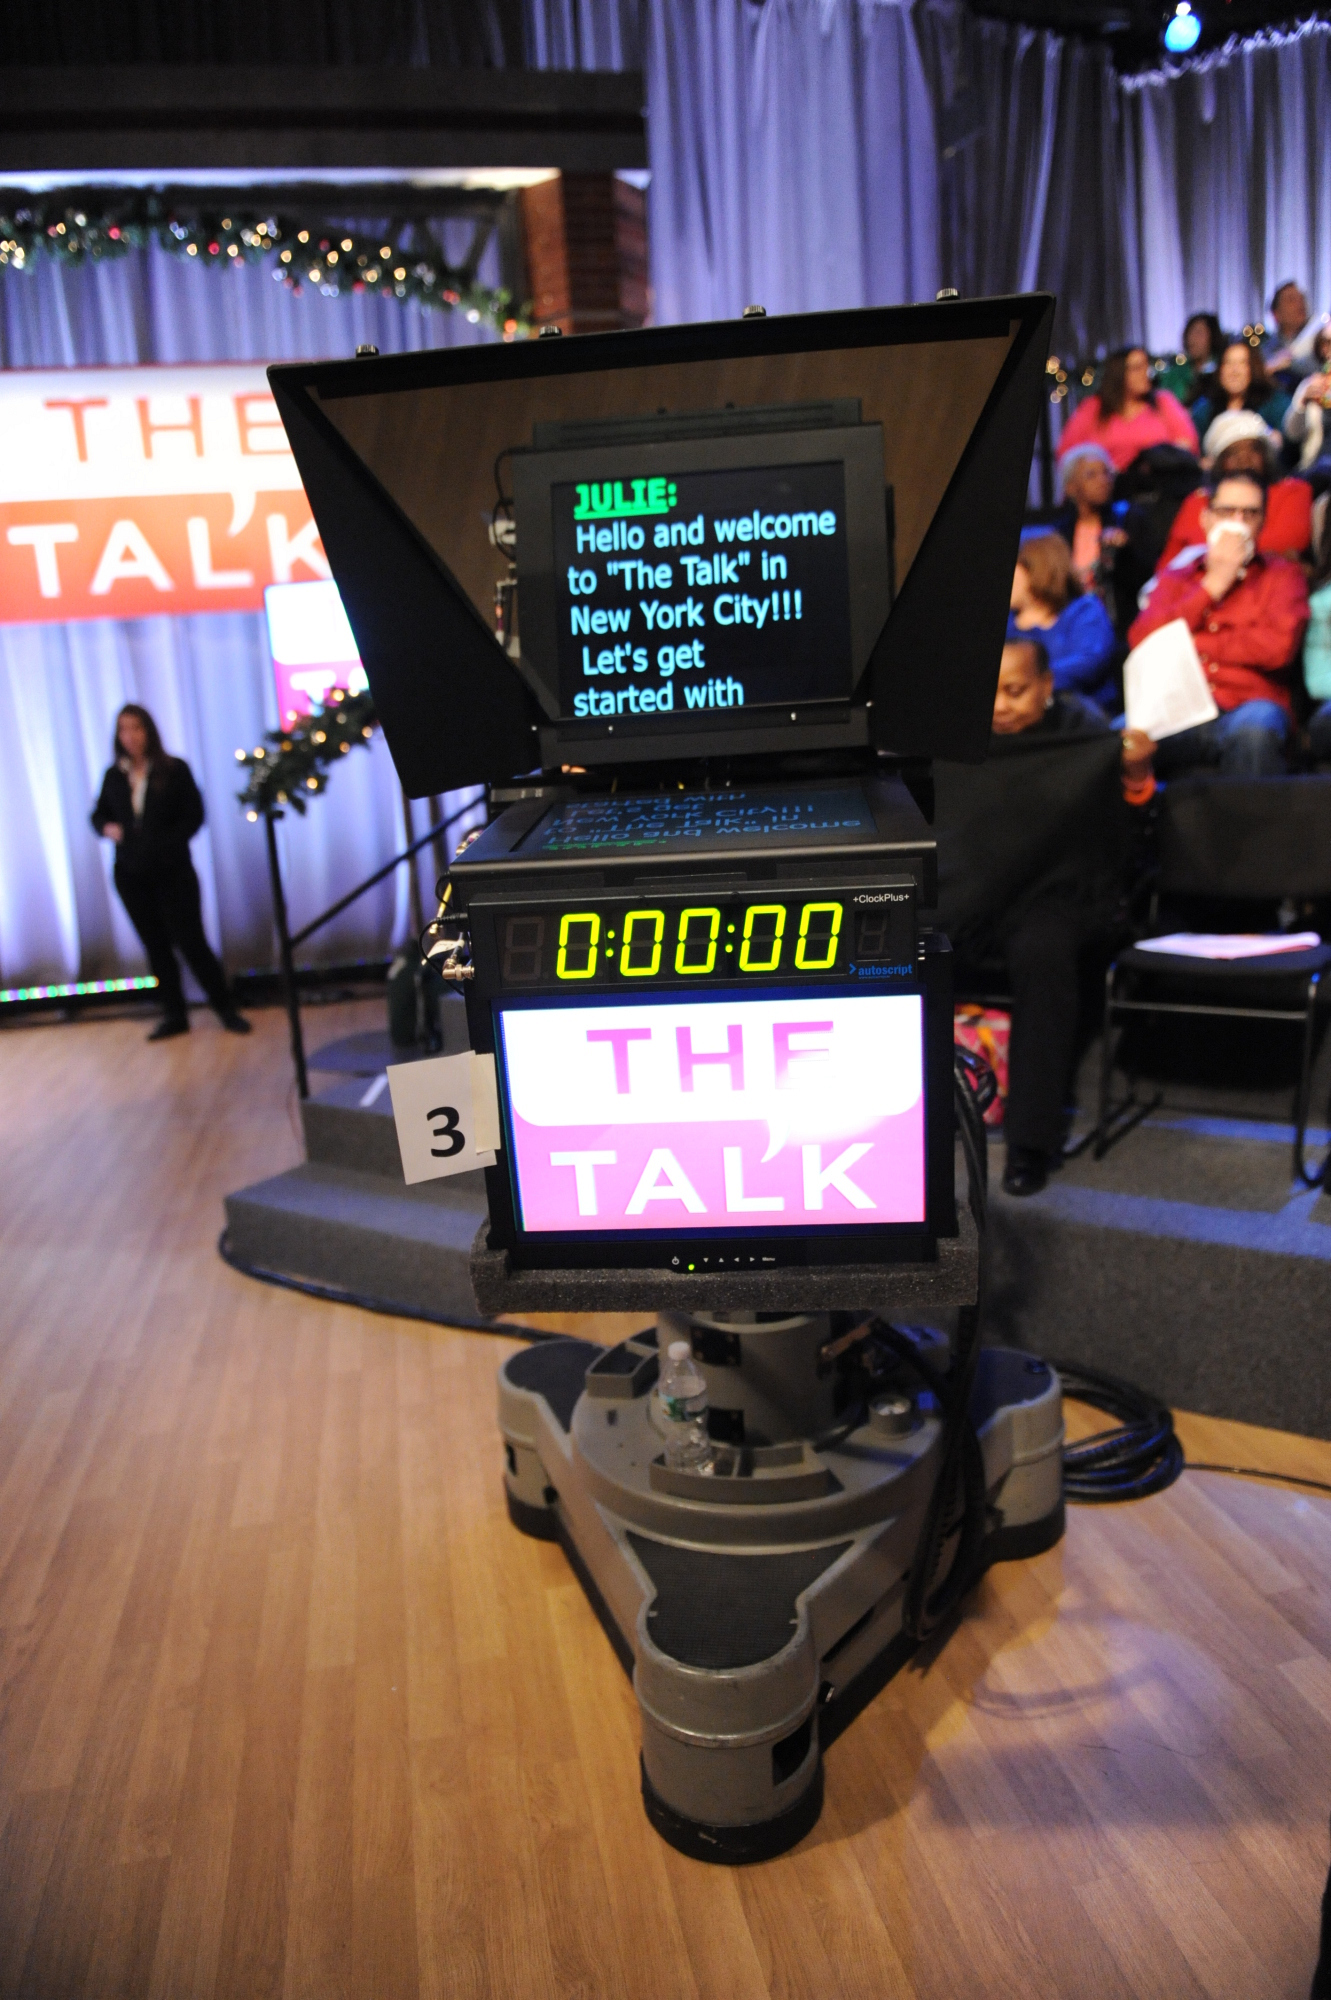 The Talk in New York City